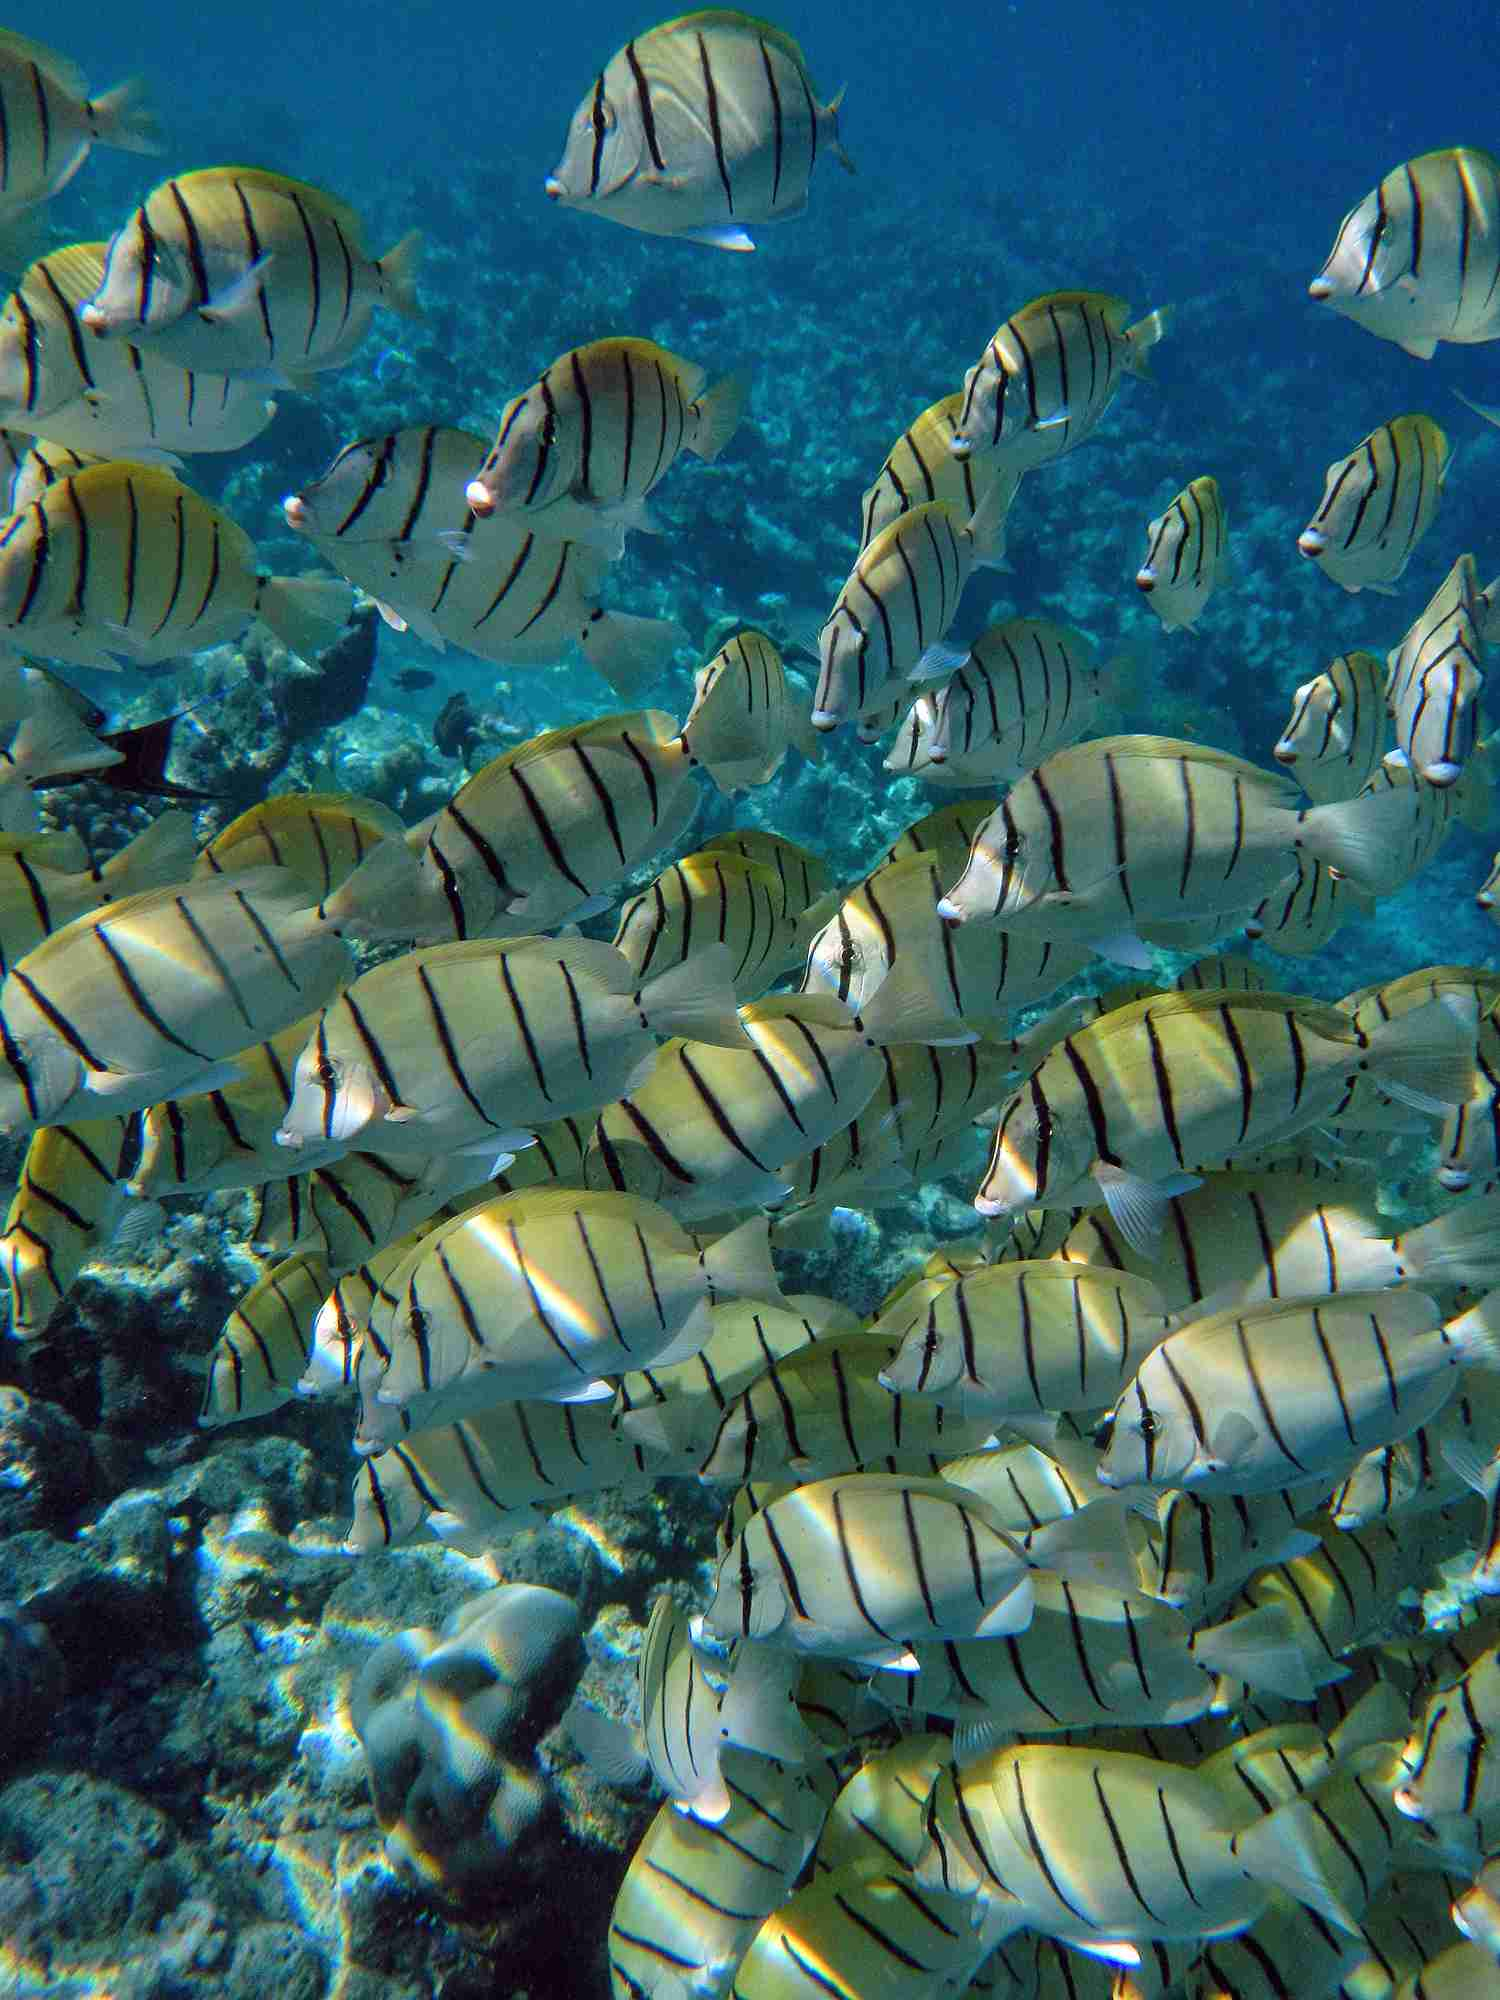 A school of convict tang fish